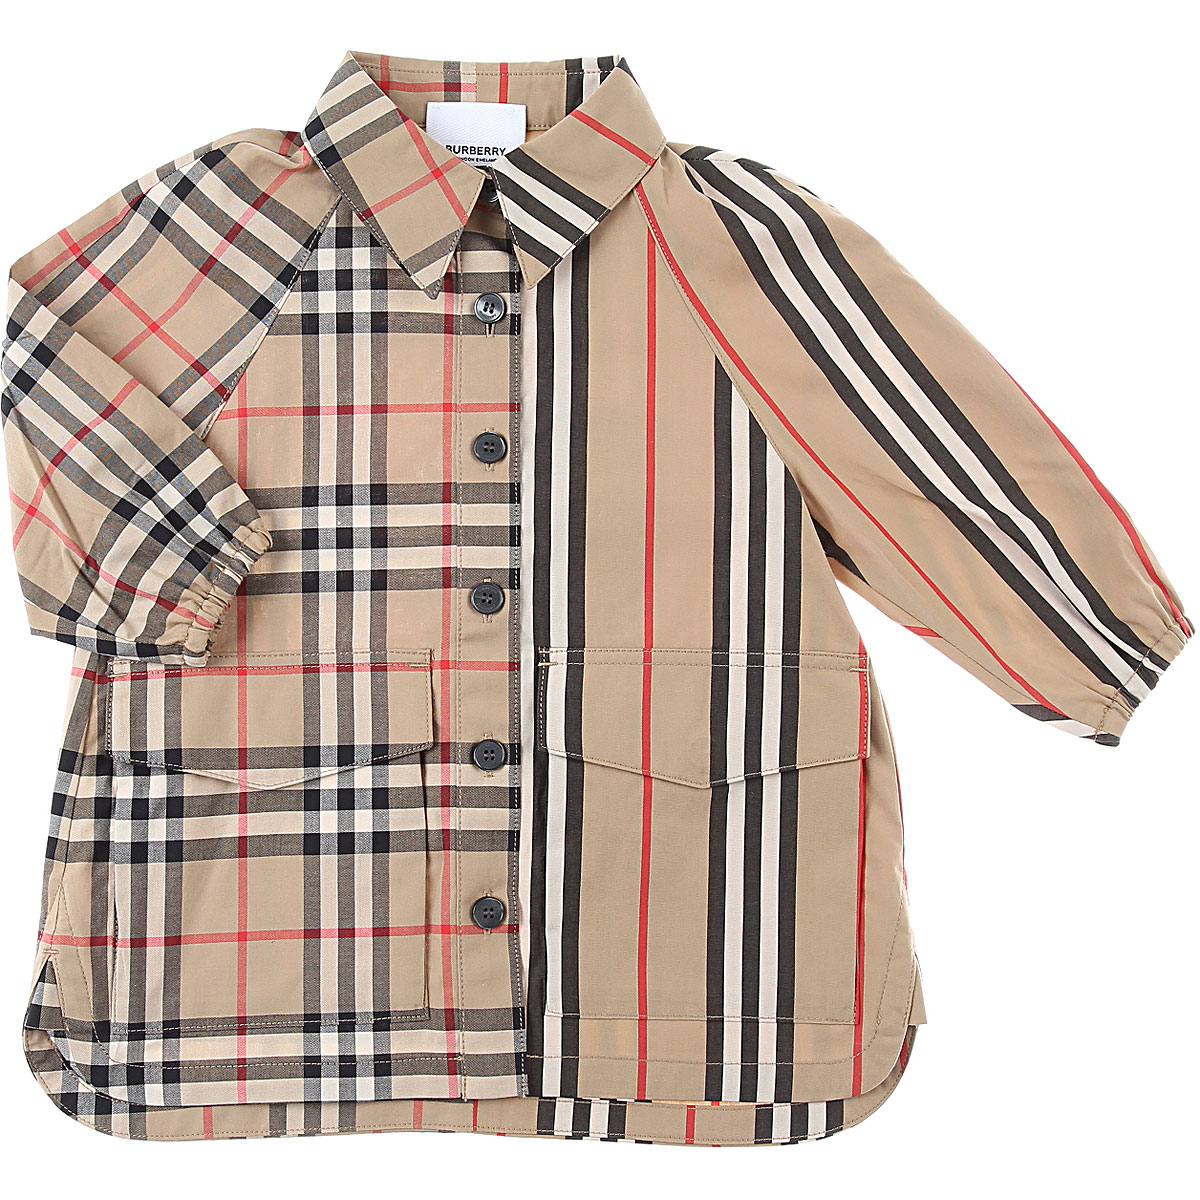 Burberry Baby Dress for Girls On Sale, Camel, Cotton, 2019, 12M 18M 2Y 6M